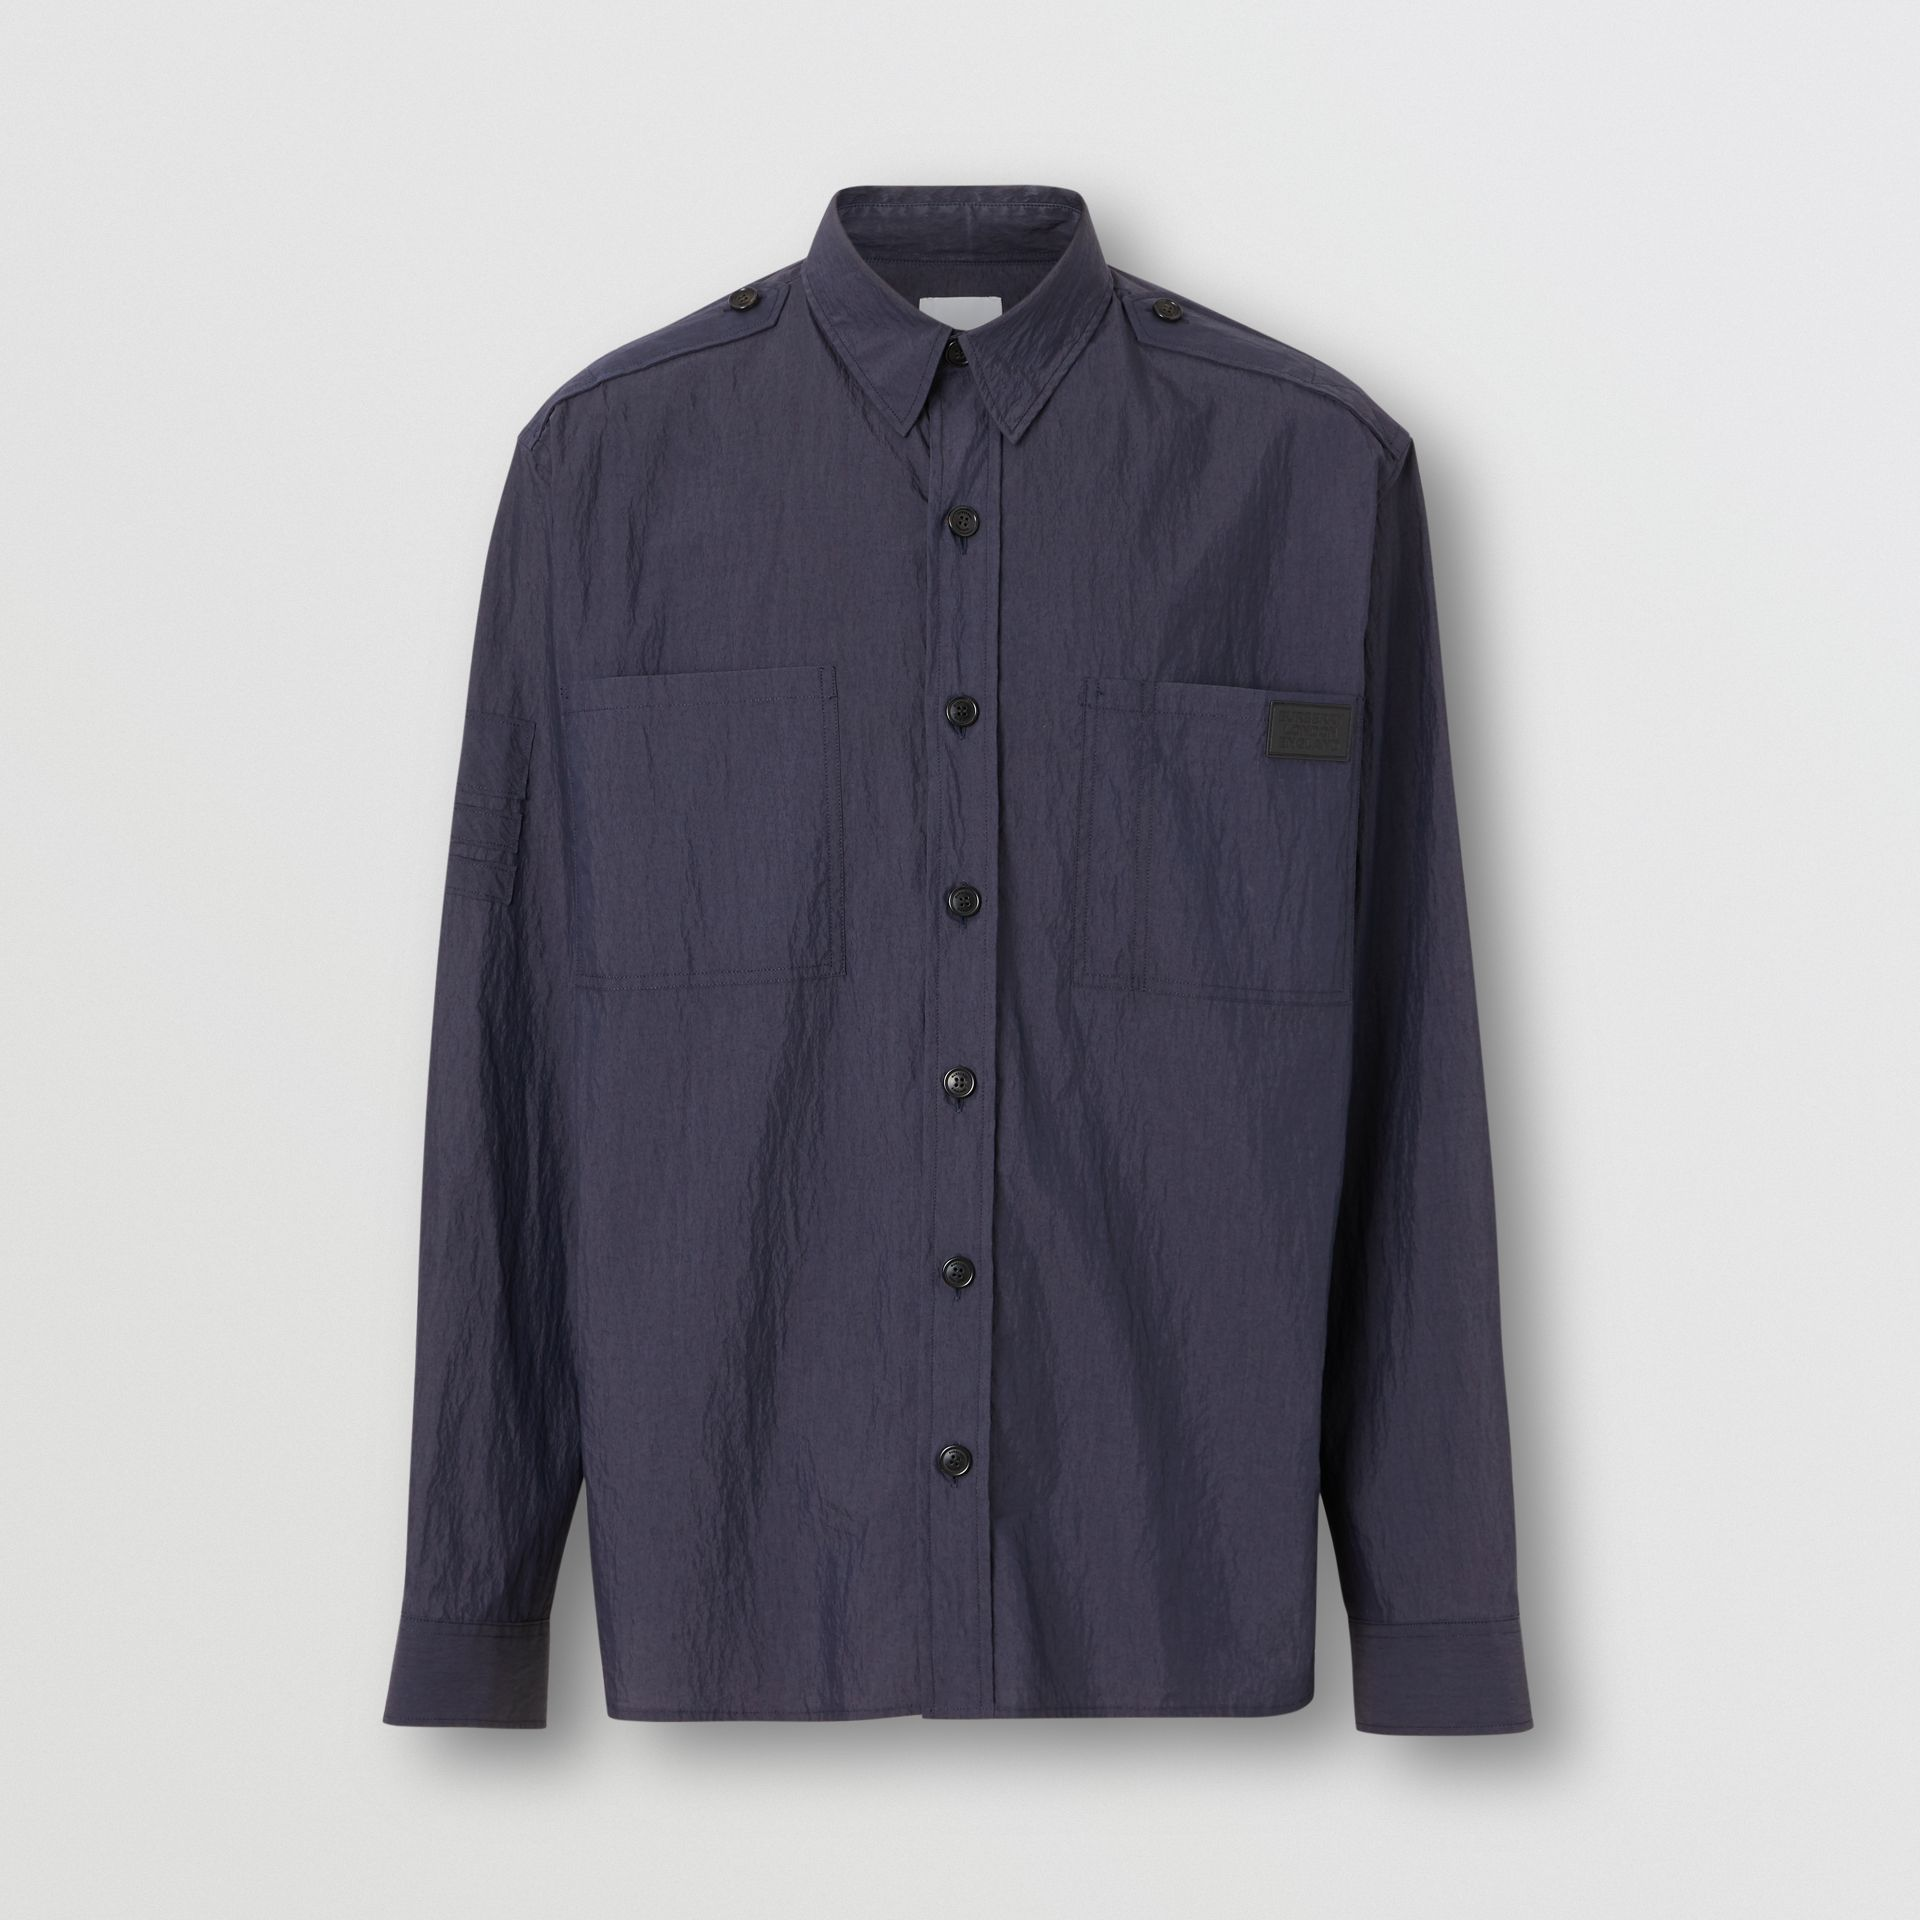 Crinkled Cotton Blend Shirt in Navy - Men | Burberry United Kingdom - gallery image 3